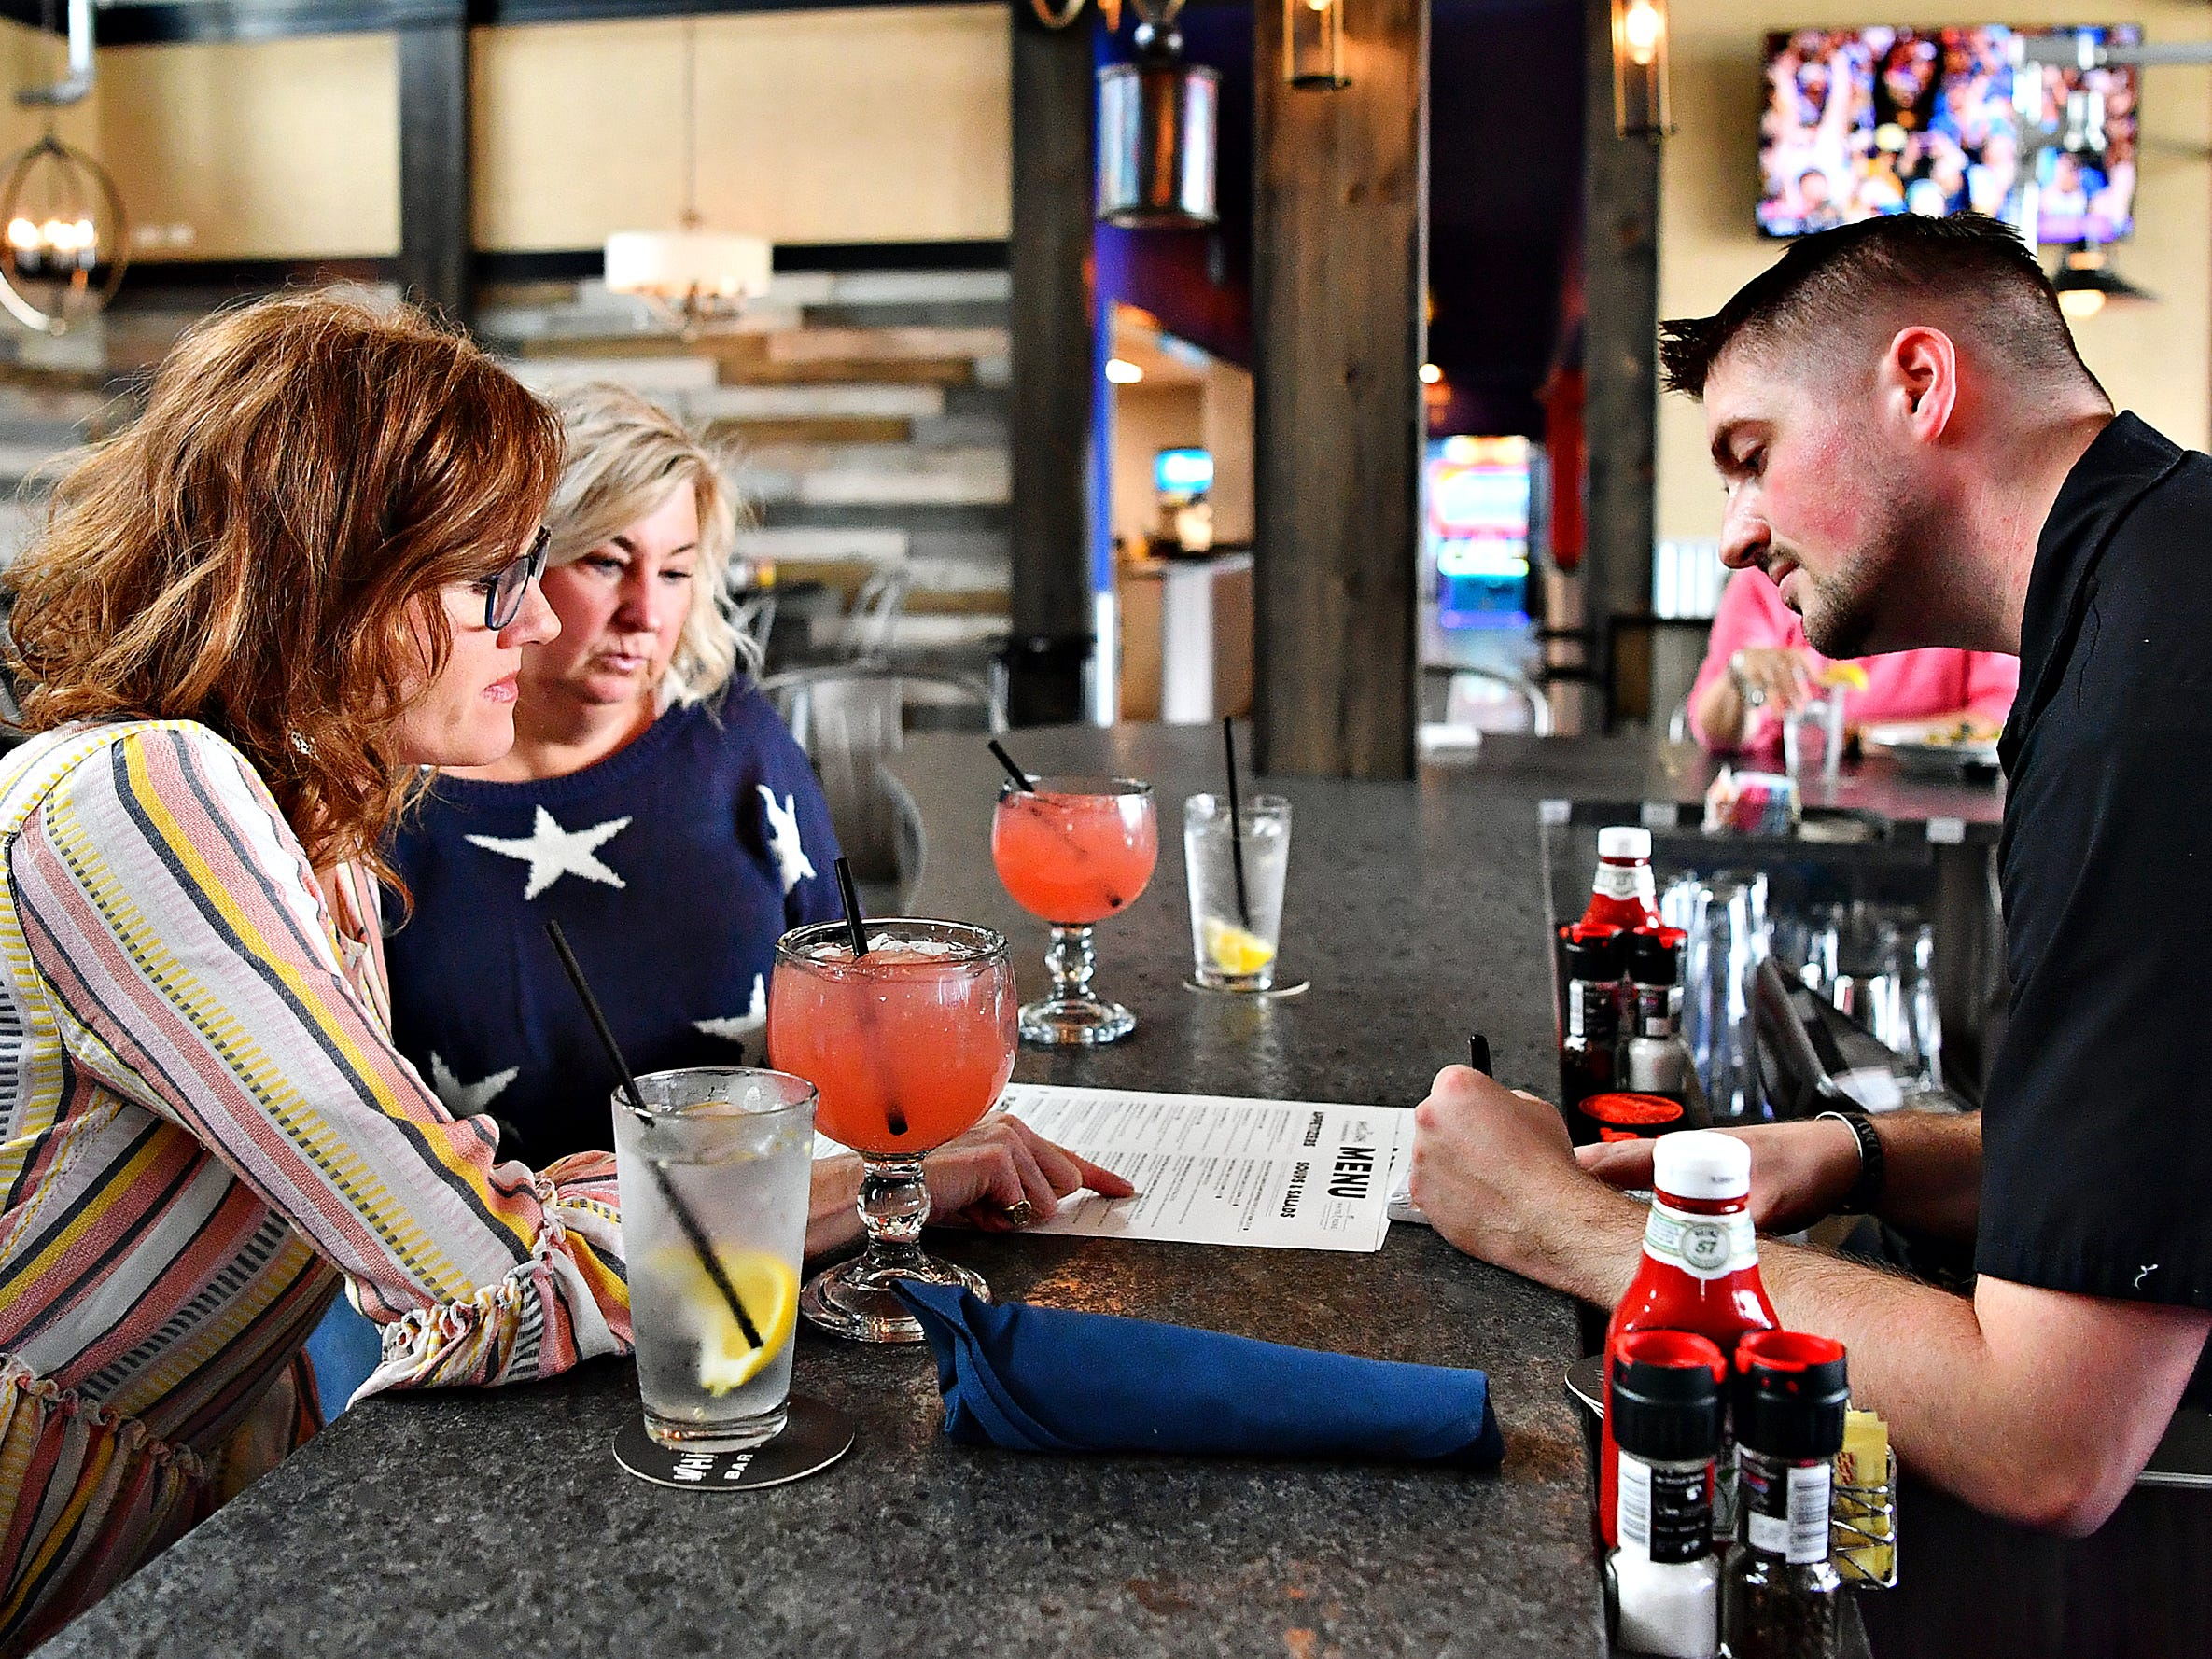 From left, Liz Orendorf and Amy Curran, both of York Township, place their order with Bartender Bradley Clarkson while dining for lunch at White Rose at Bridgewater, which overlooks the Bridgewater Golf Course in York Township, Friday, April 12, 2019. Dawn J. Sagert photo